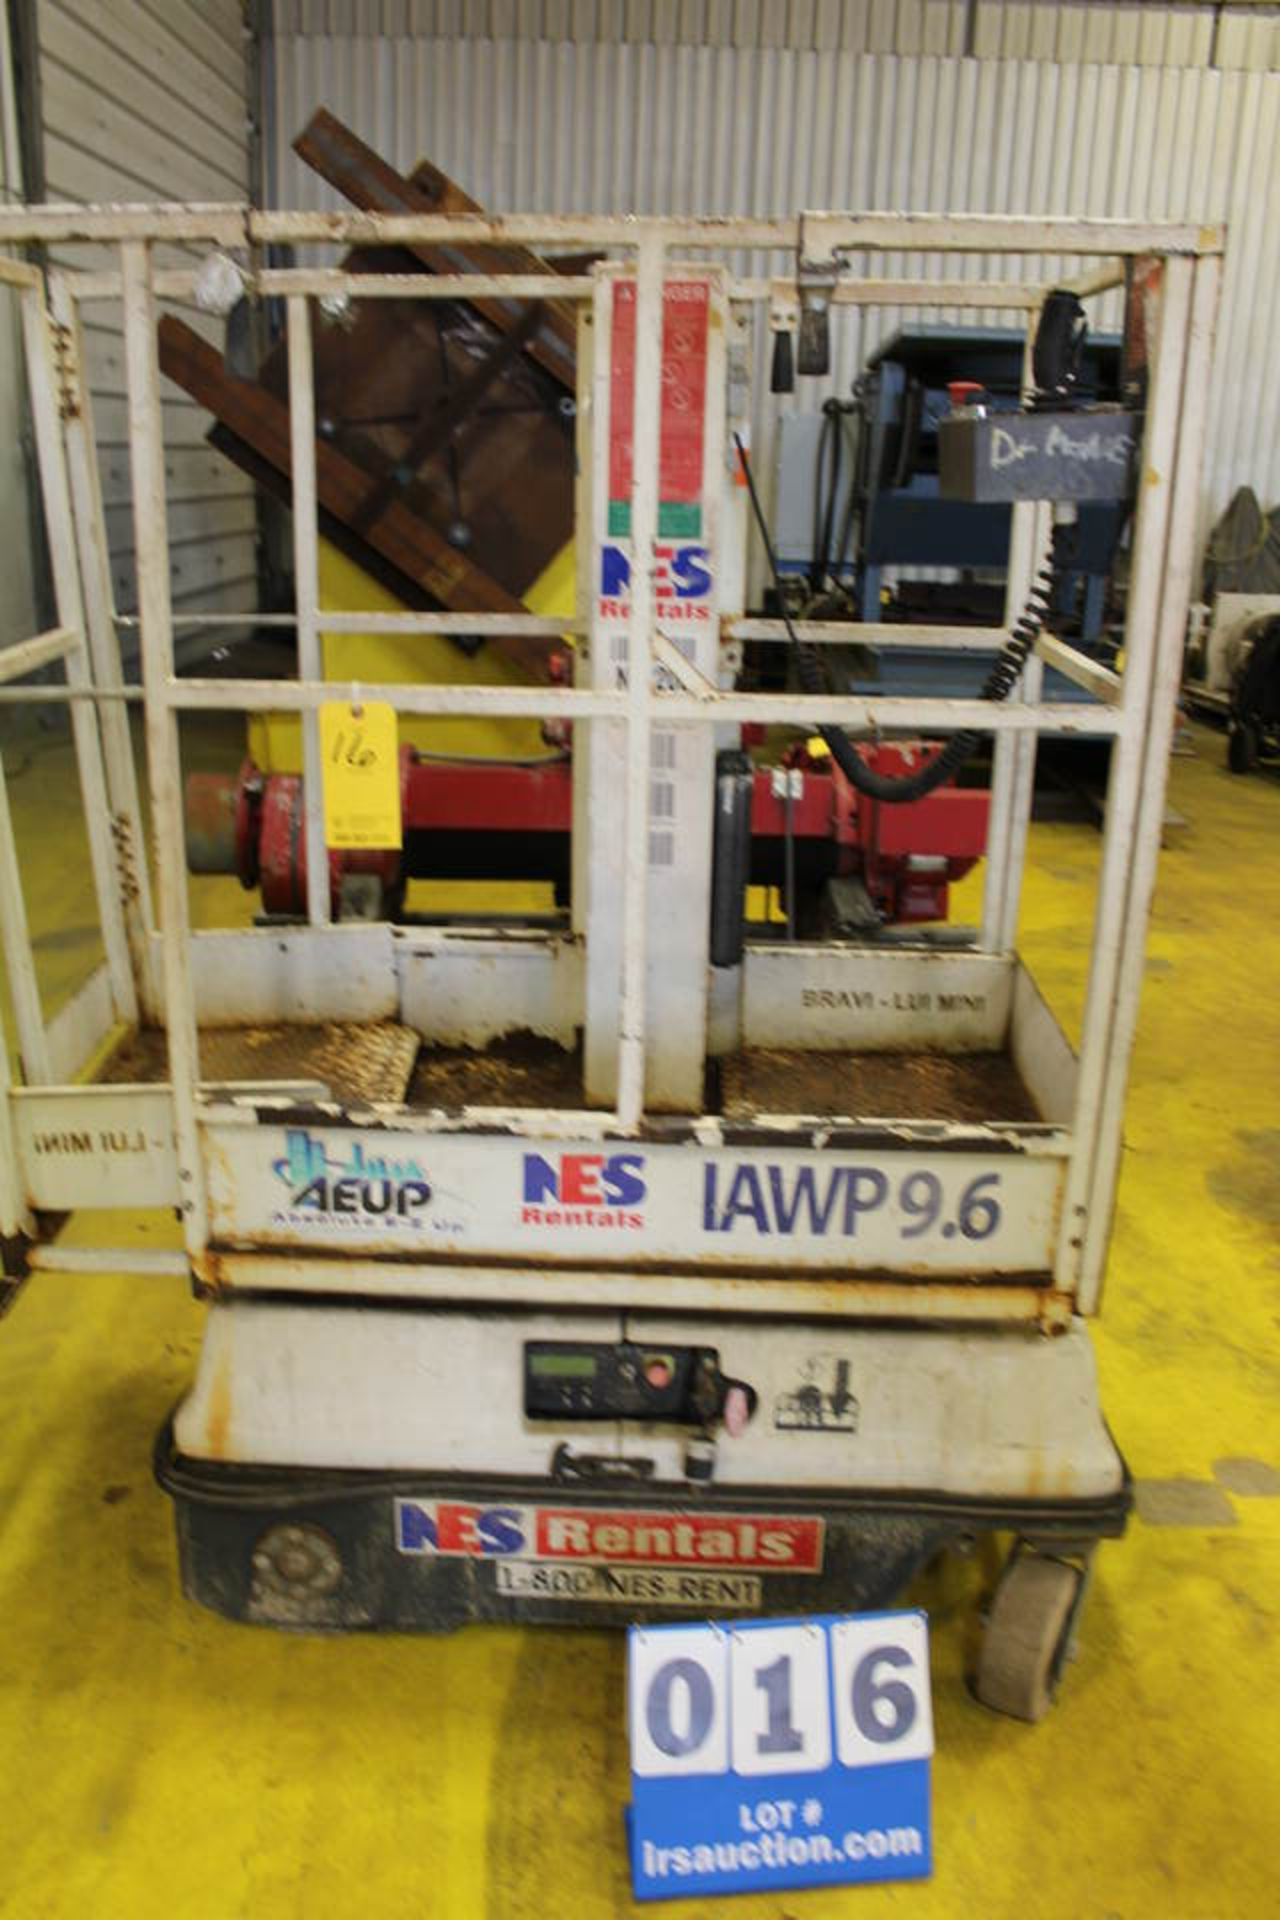 Lot 16 - BRAVIISOL PORTABLE PLATFORM LIFT, 2' X 4' FRAME W/ CHARGER (LOCATION: 4081 EASTSIDE HWY,